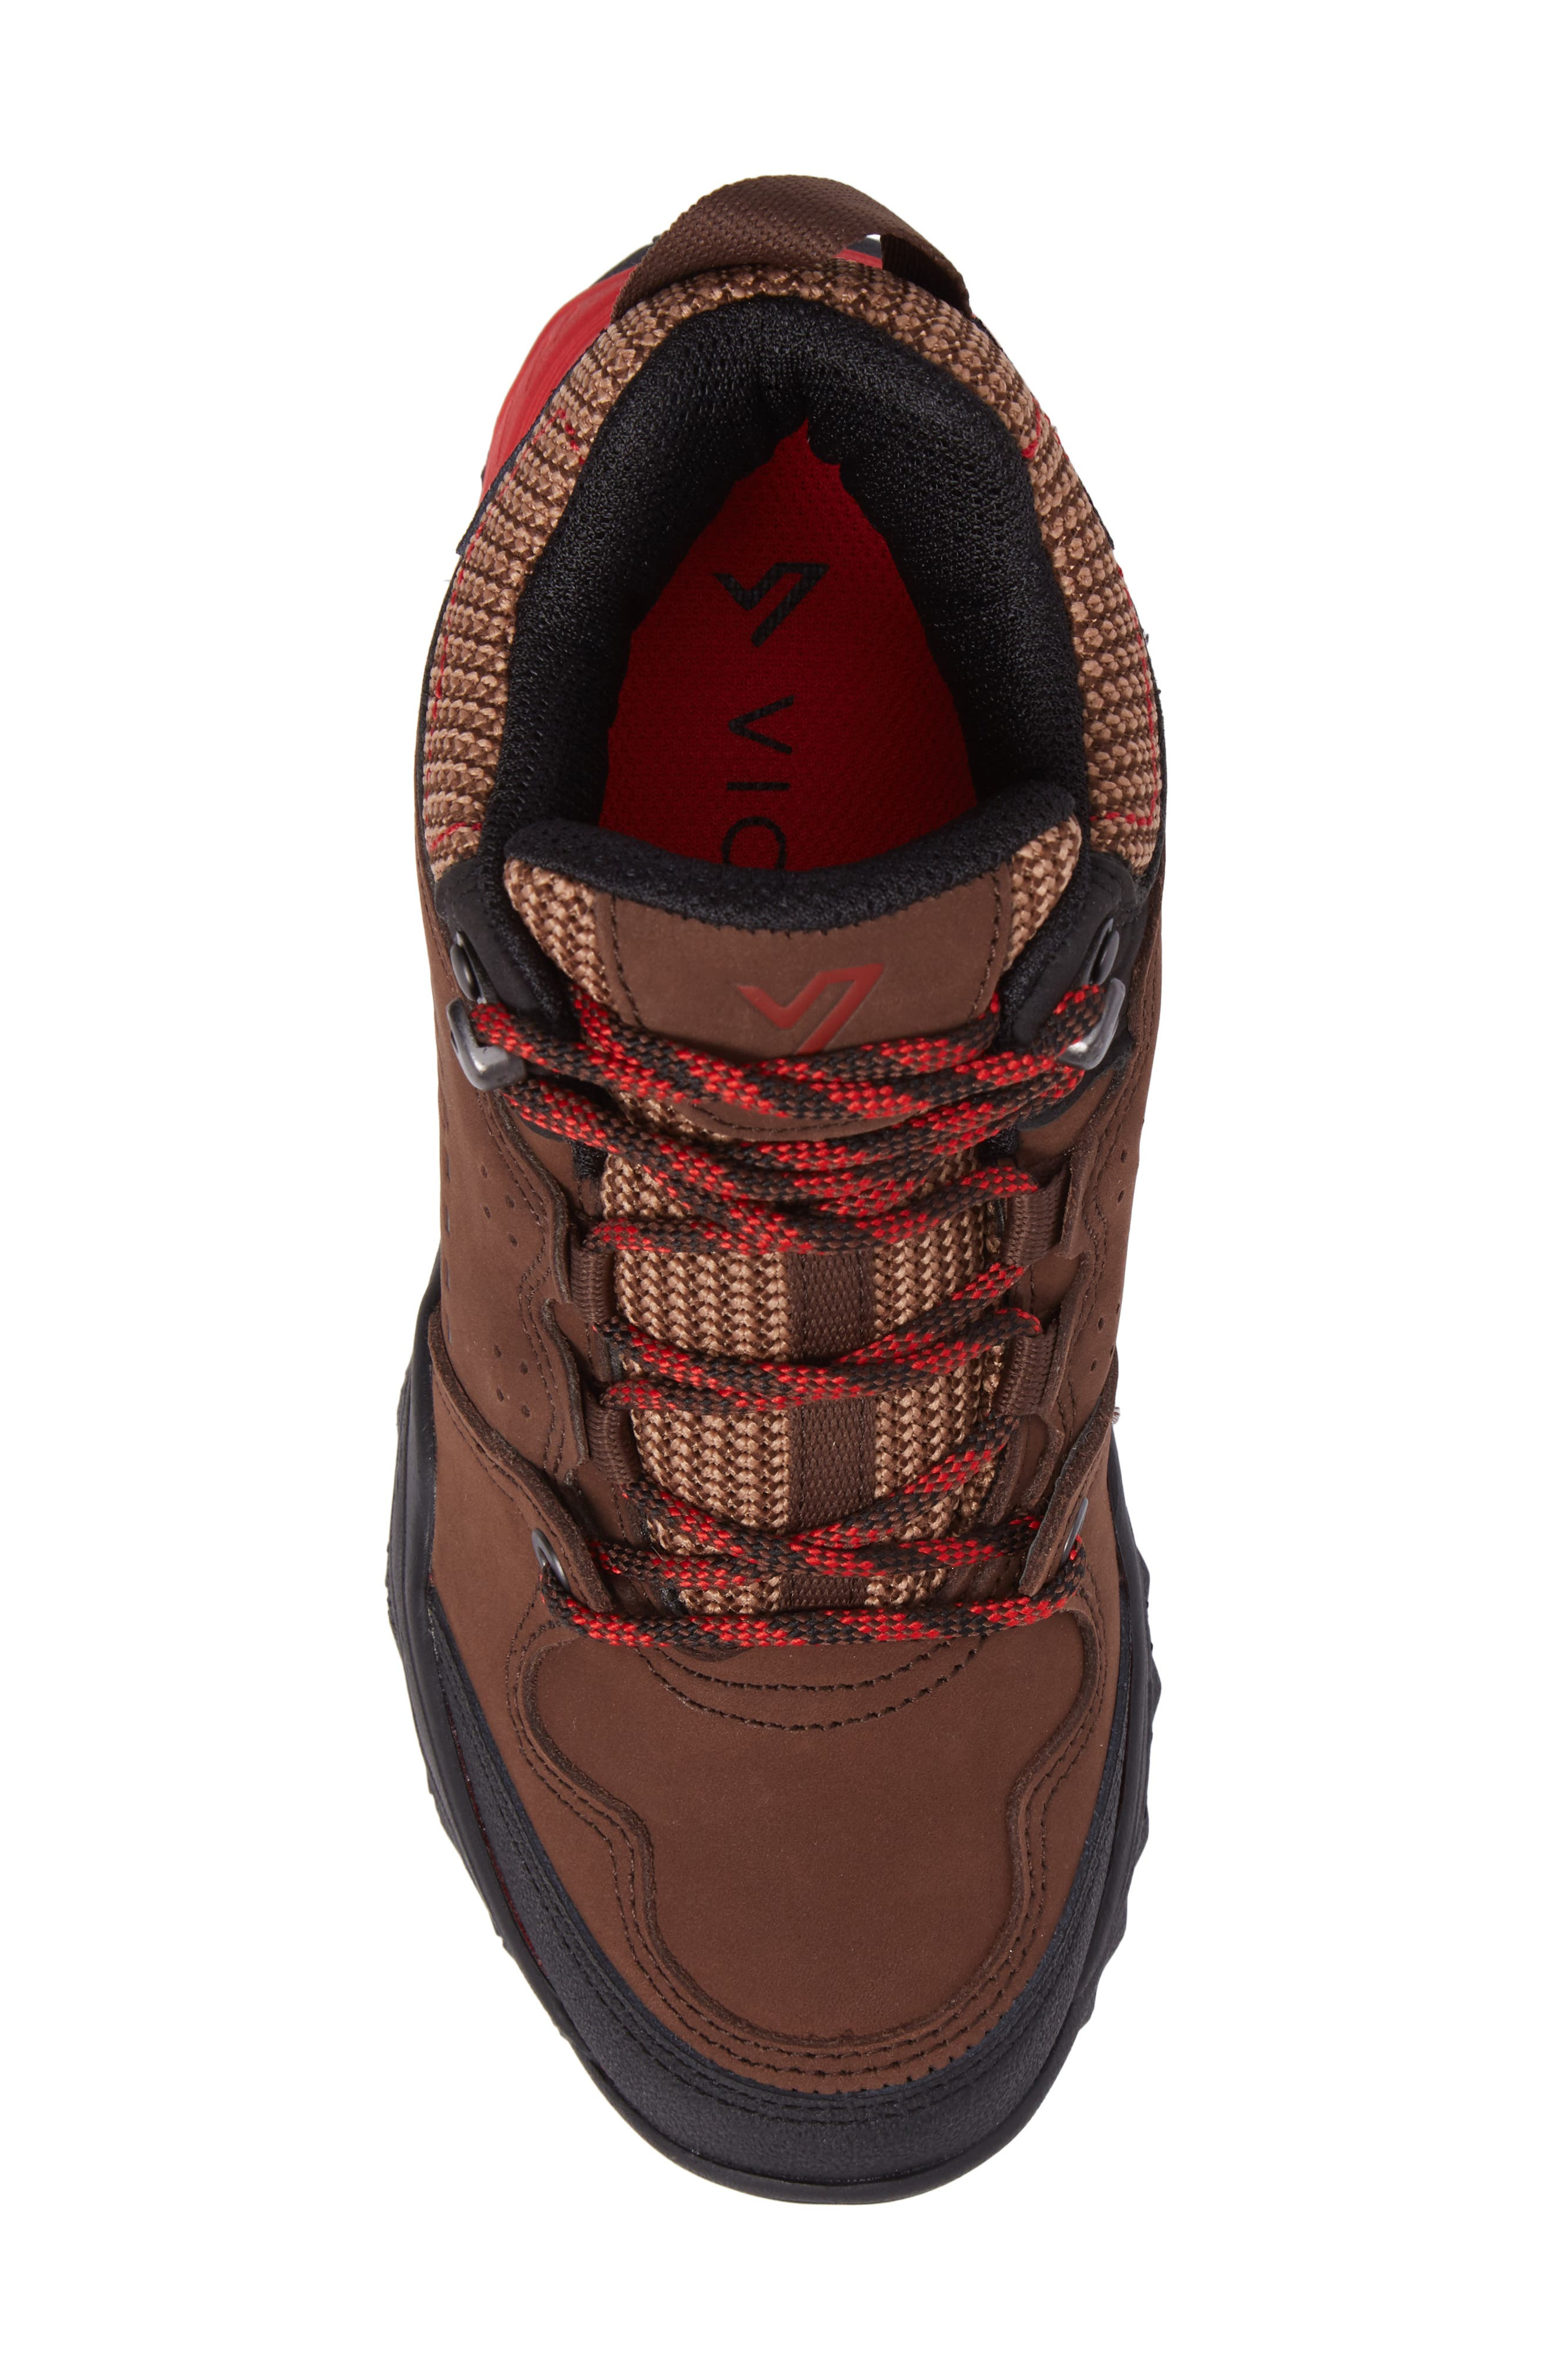 Everett Hiking Shoe,                             Alternate thumbnail 5, color,                             Brown / Red Leather